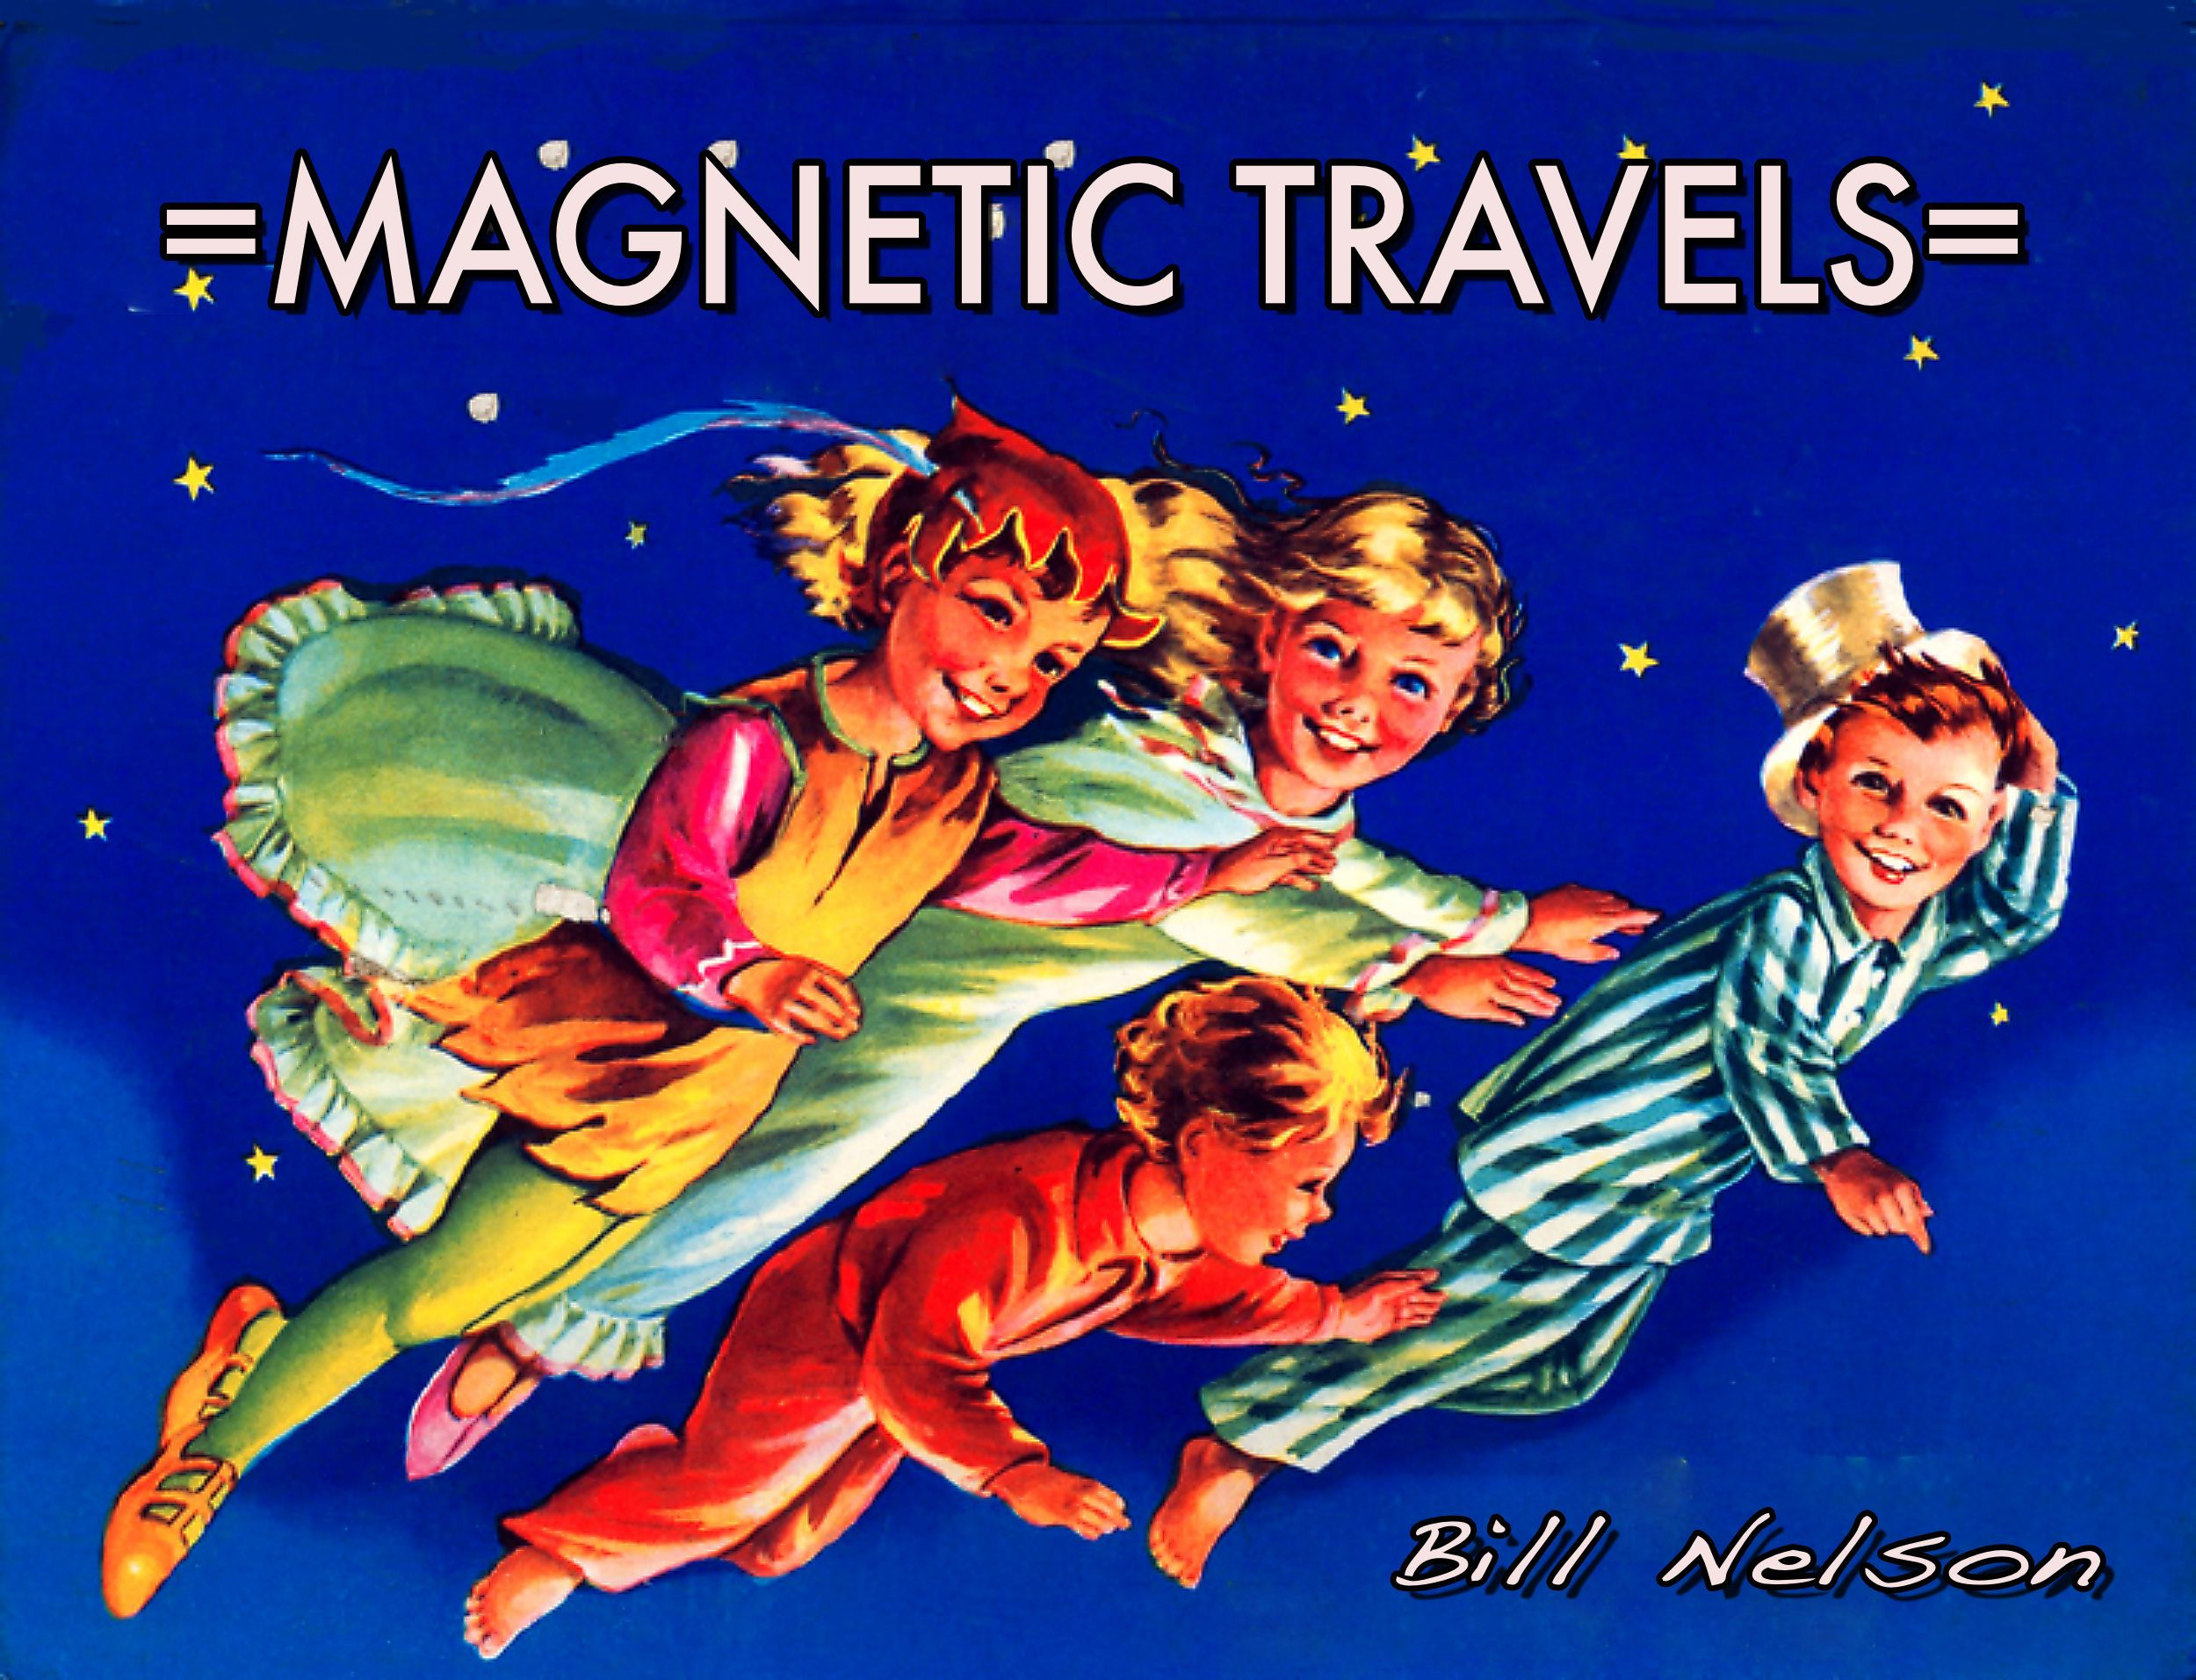 Flyer For The Album Magnetic Travels